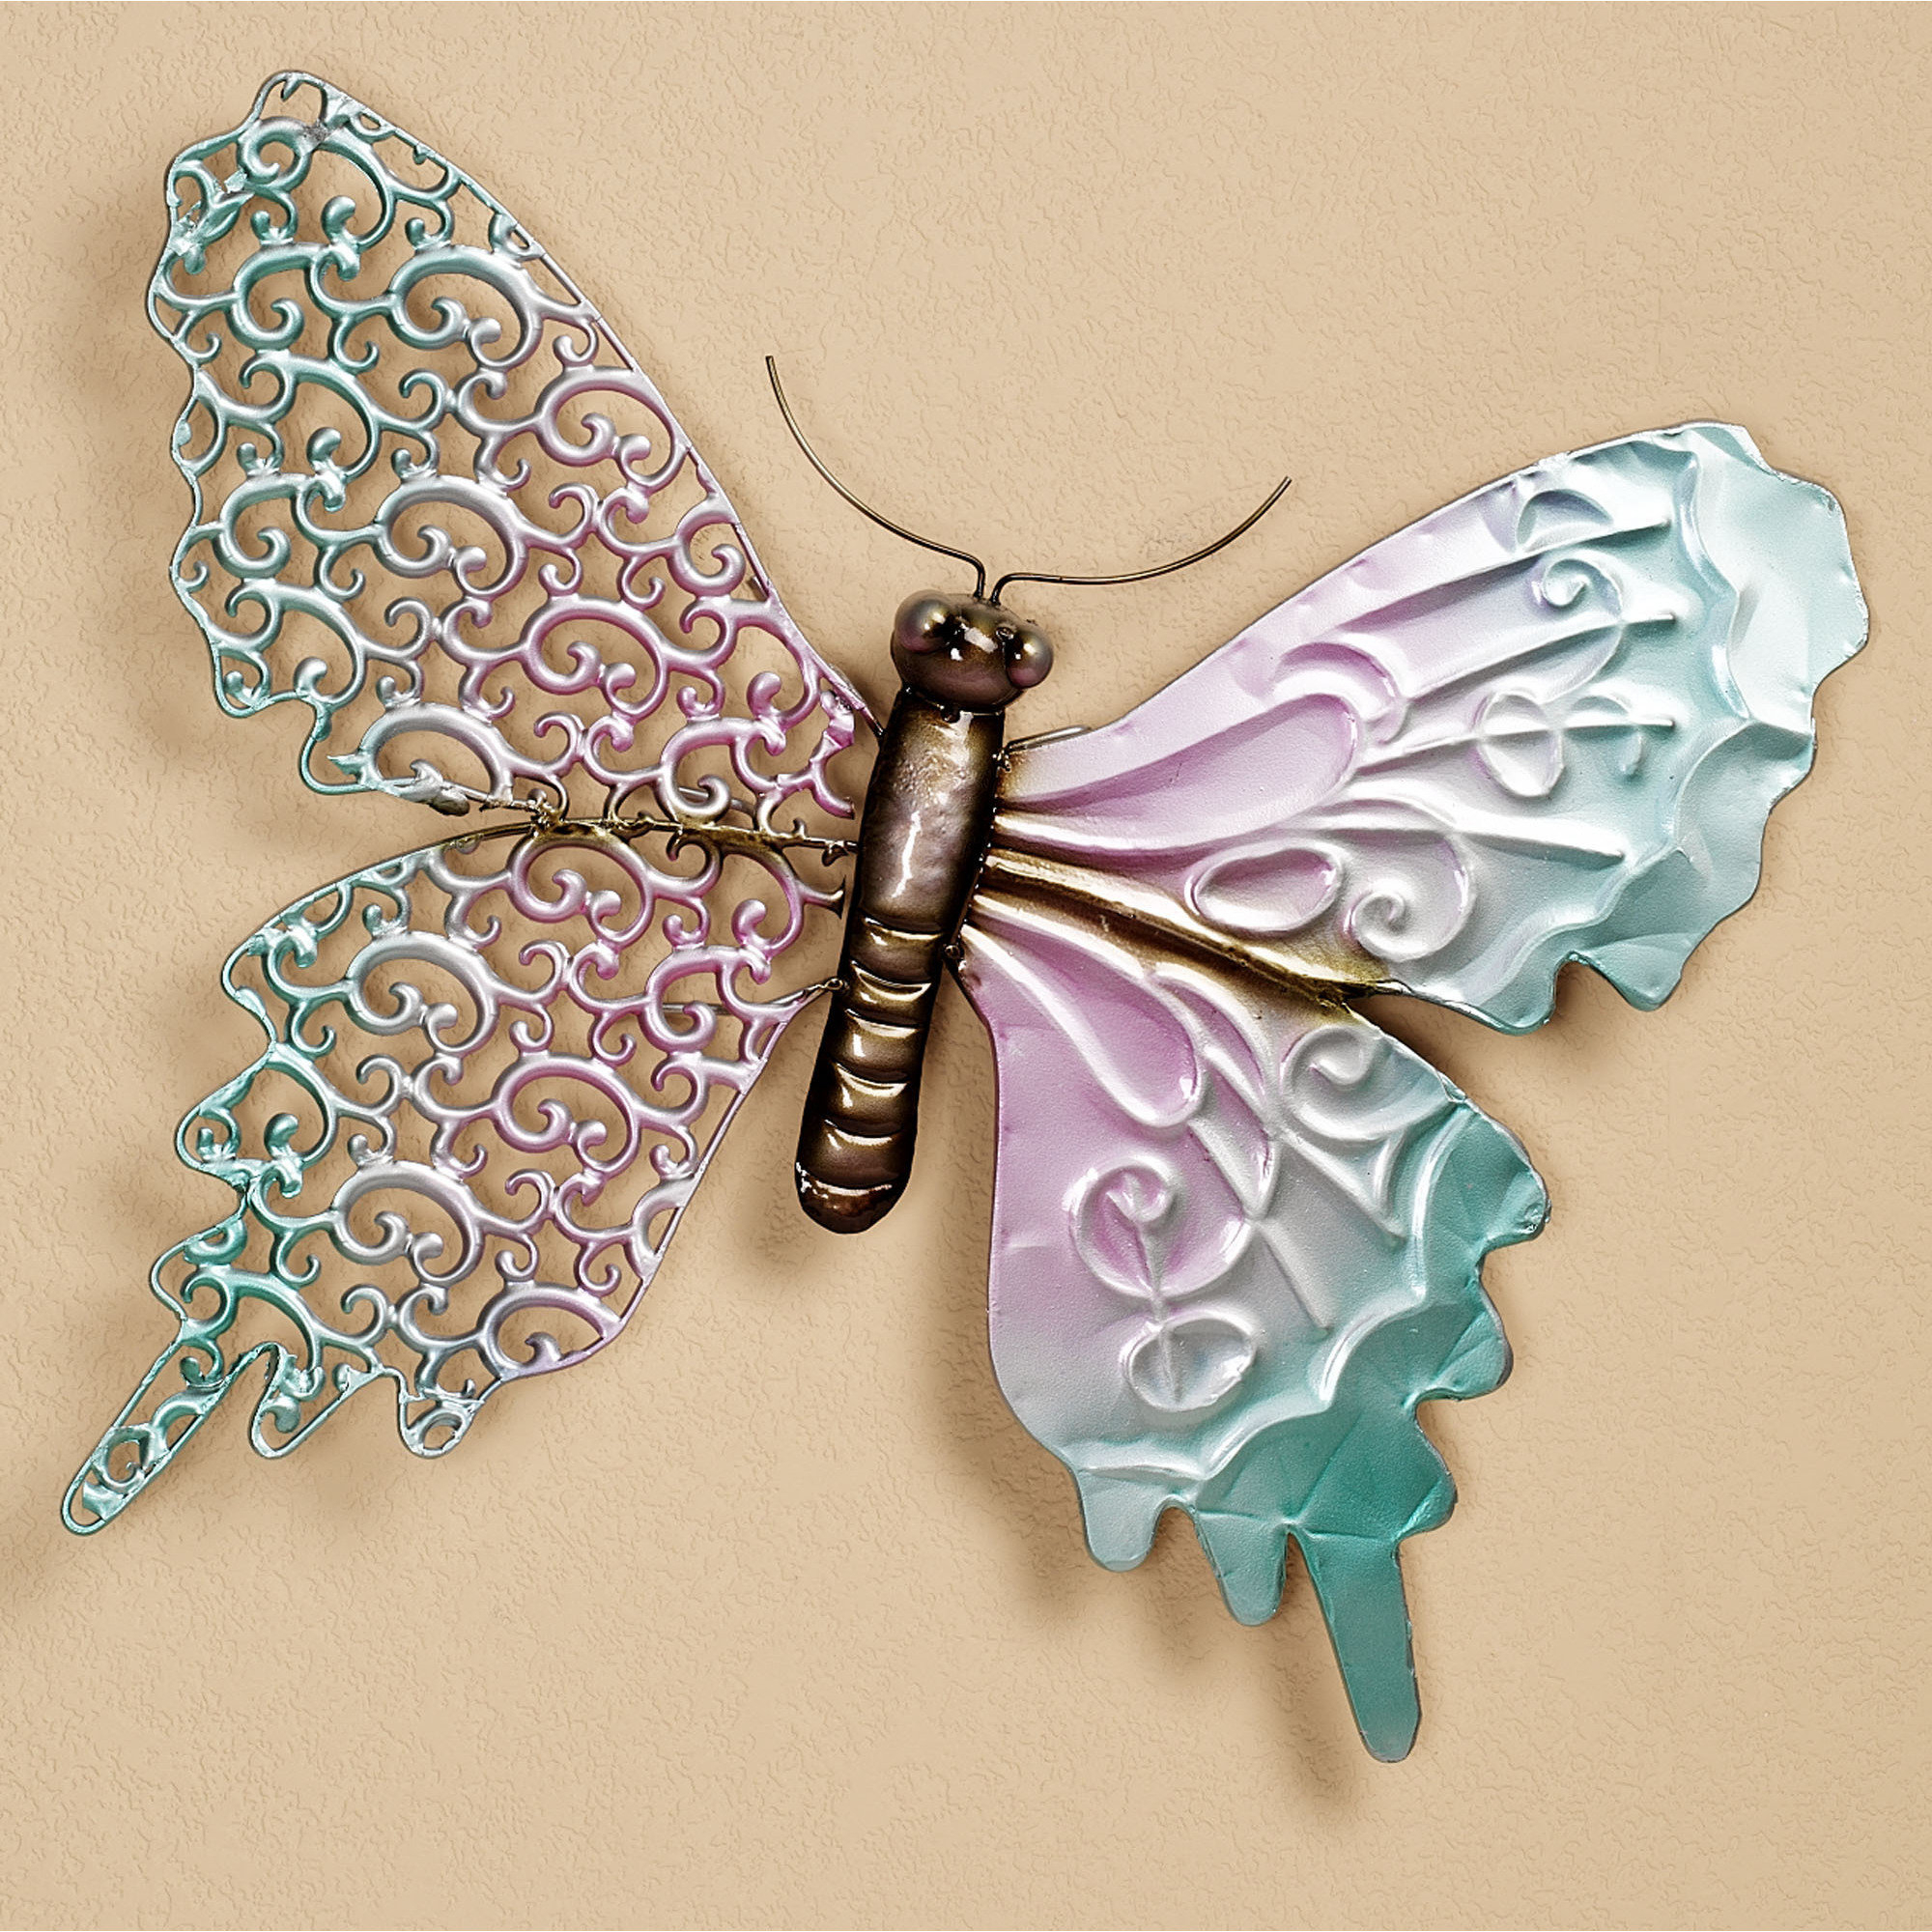 Ila Metal Butterfly Wall Decor Regarding Recent 25 Magnanimous Butterfly Wall Decor That Gives You Pleasure (View 14 of 20)